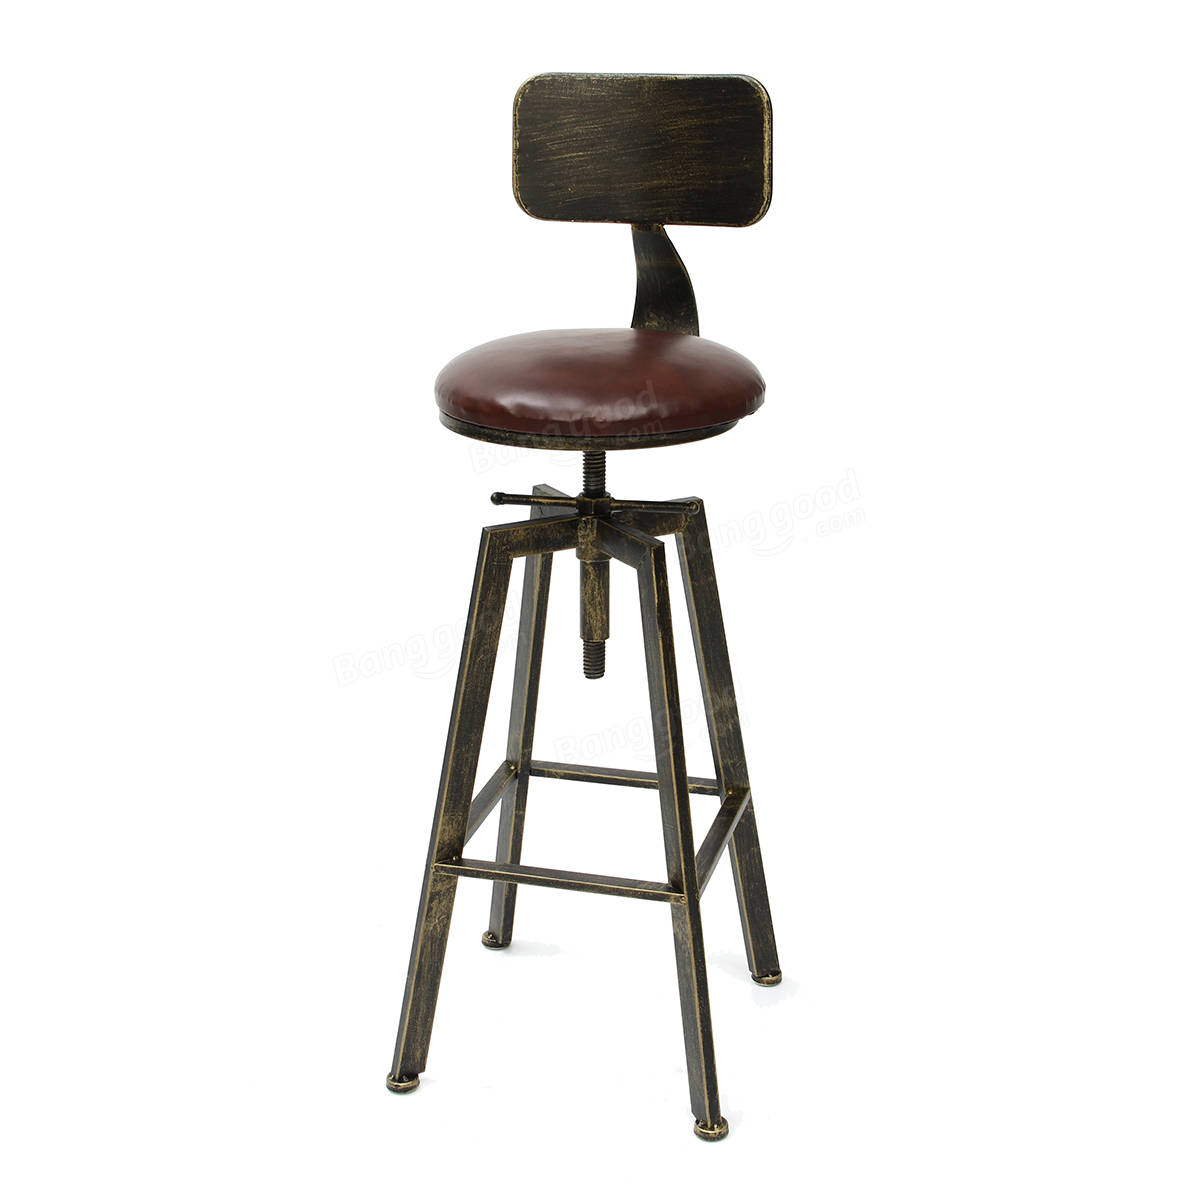 Vintage Retro Craft Pu Leather Bar Stool 360 Degree Rotate Counter Lift High Chair Decorations